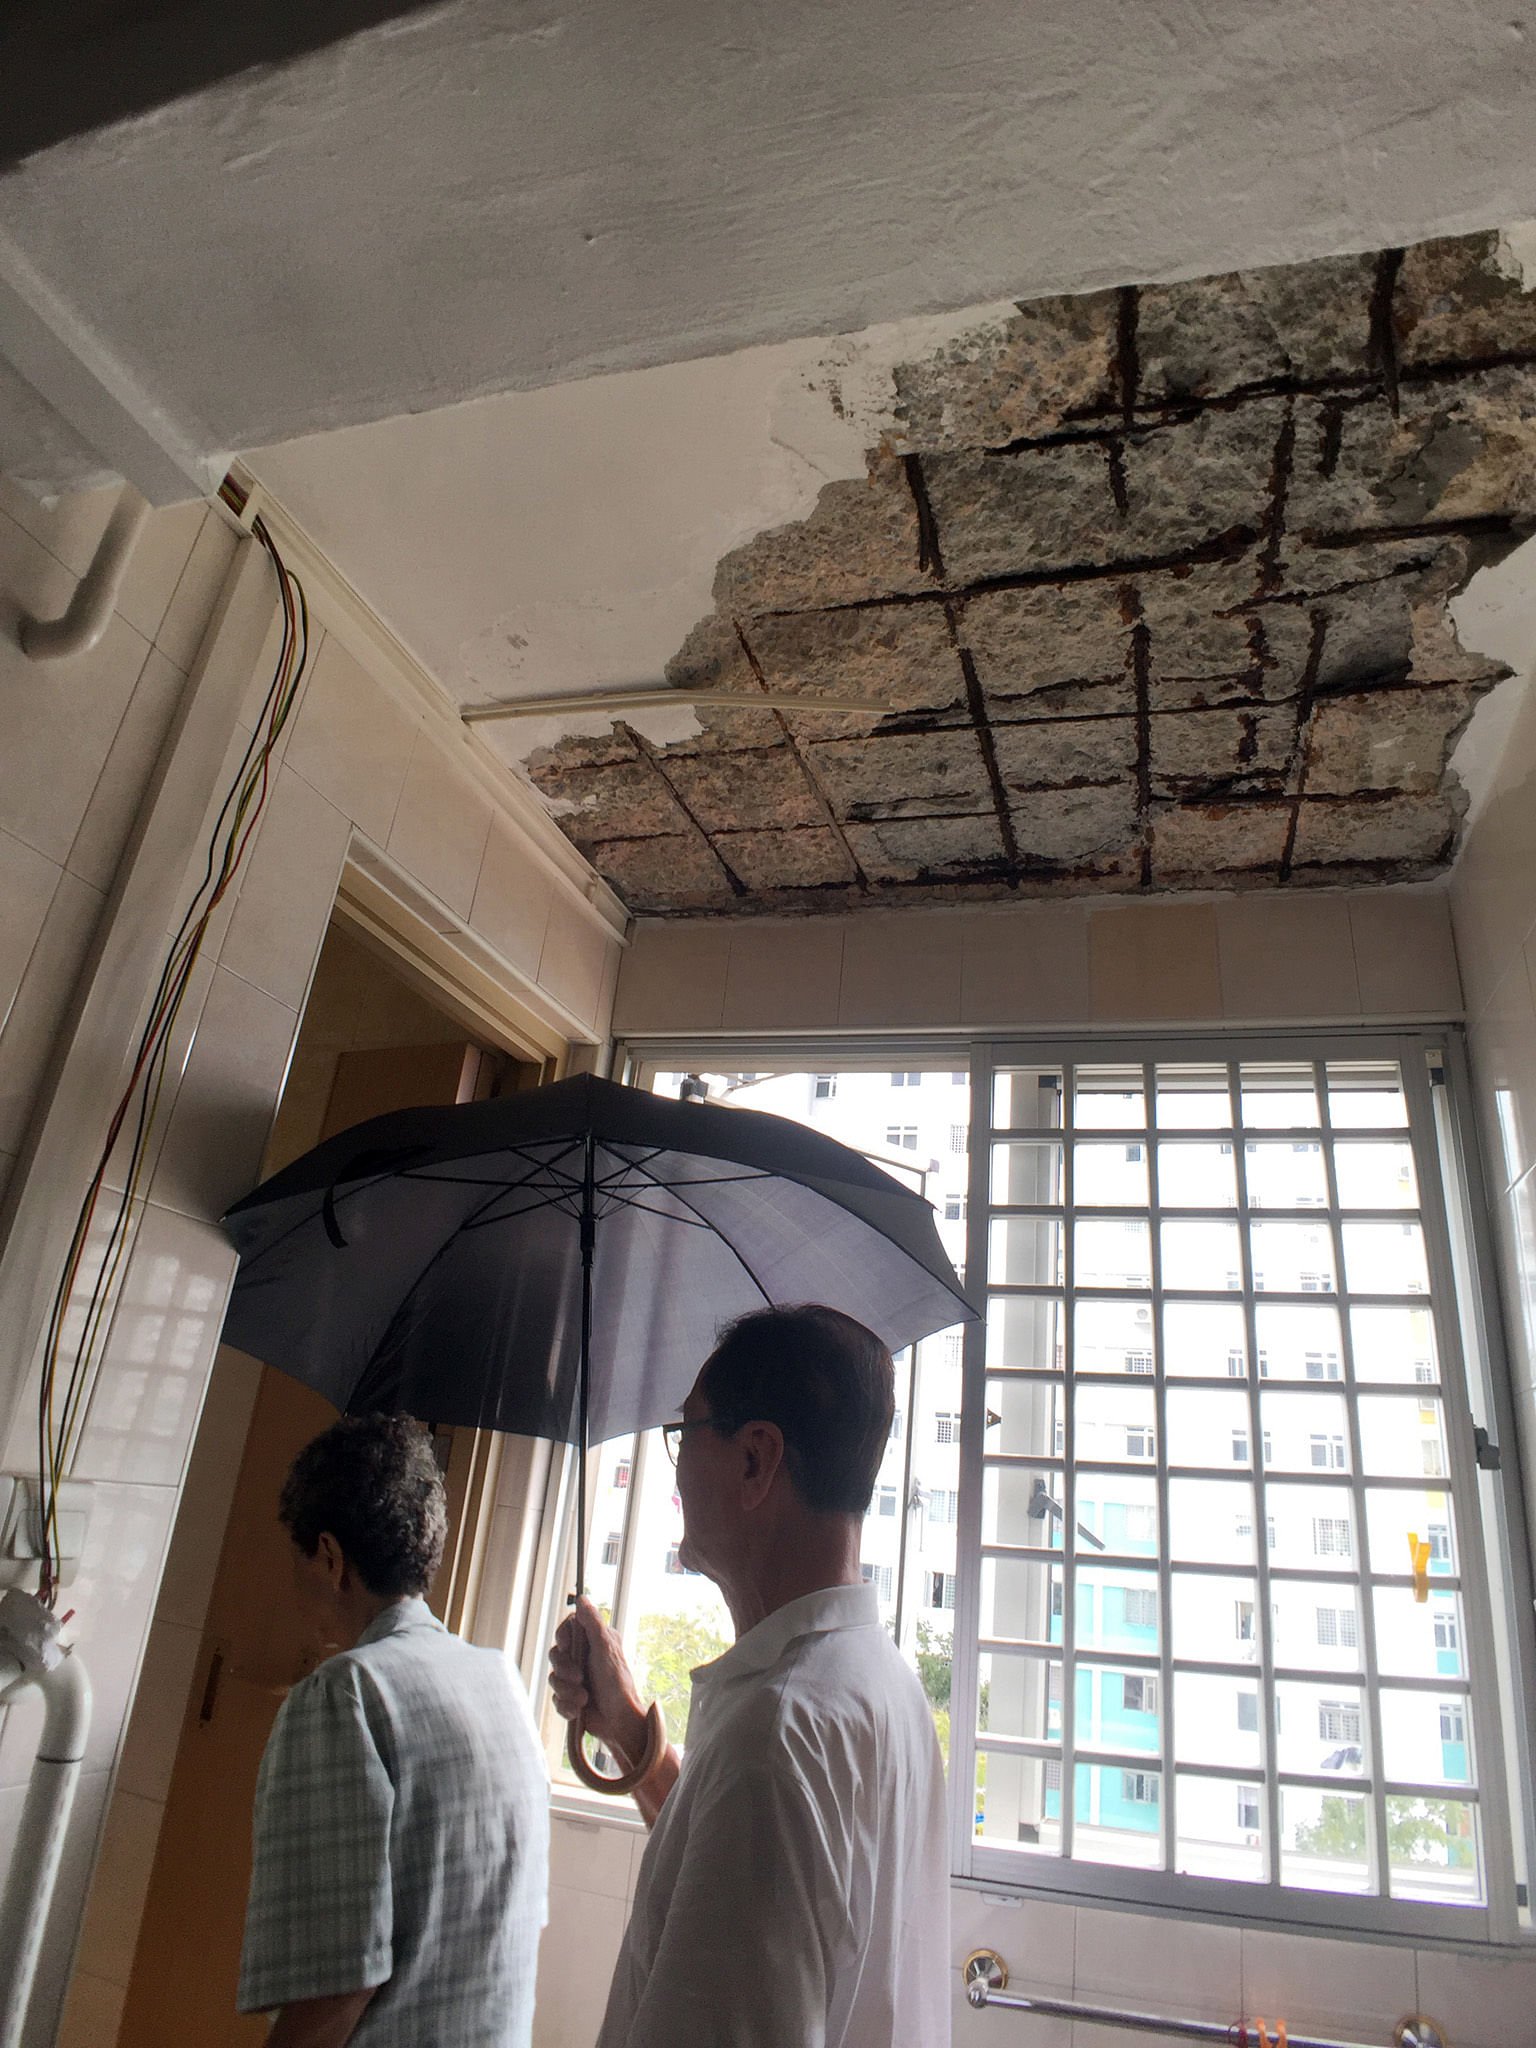 Concrete Chunks Fall From Ceiling Of 43 Year Old Flat